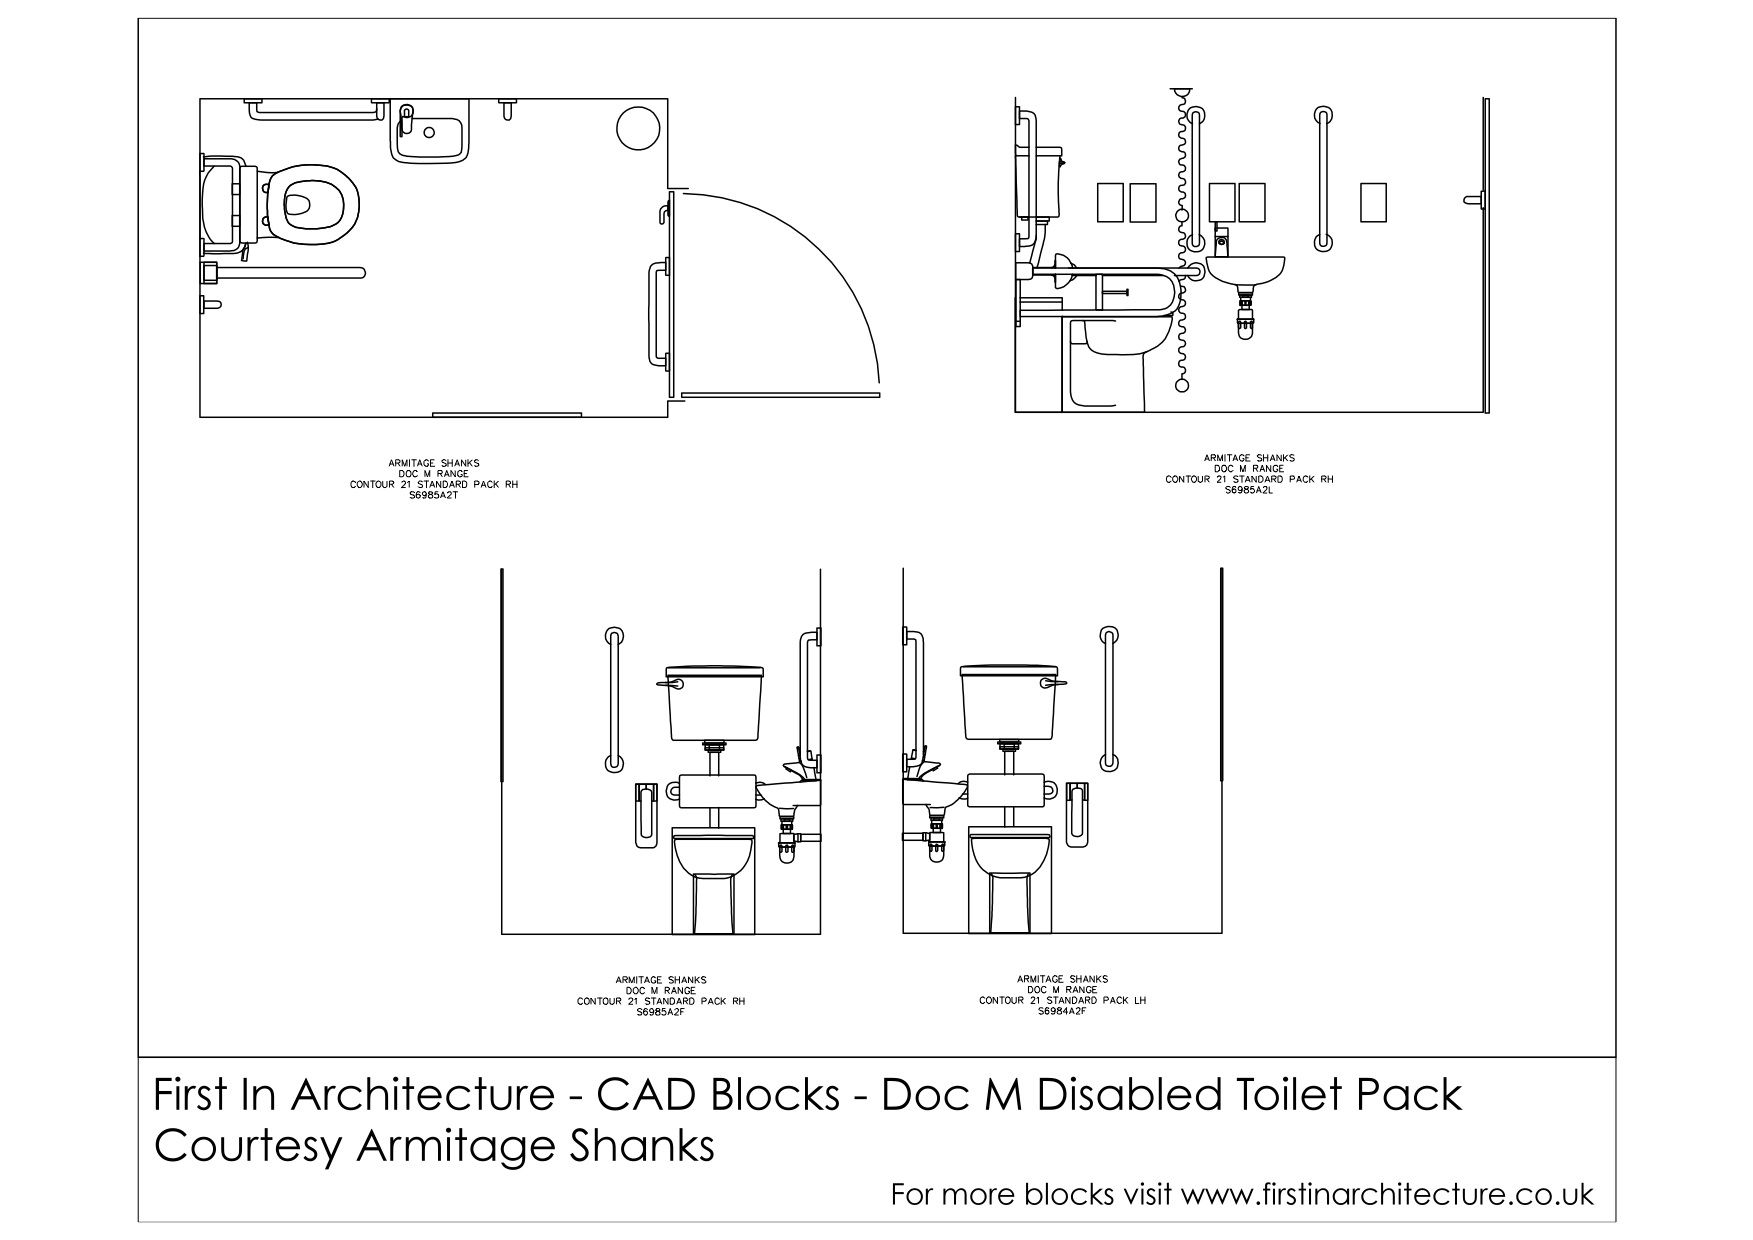 Bathroom Stalls Cad cad blocks - doc m disabled toilet | architecture | pinterest